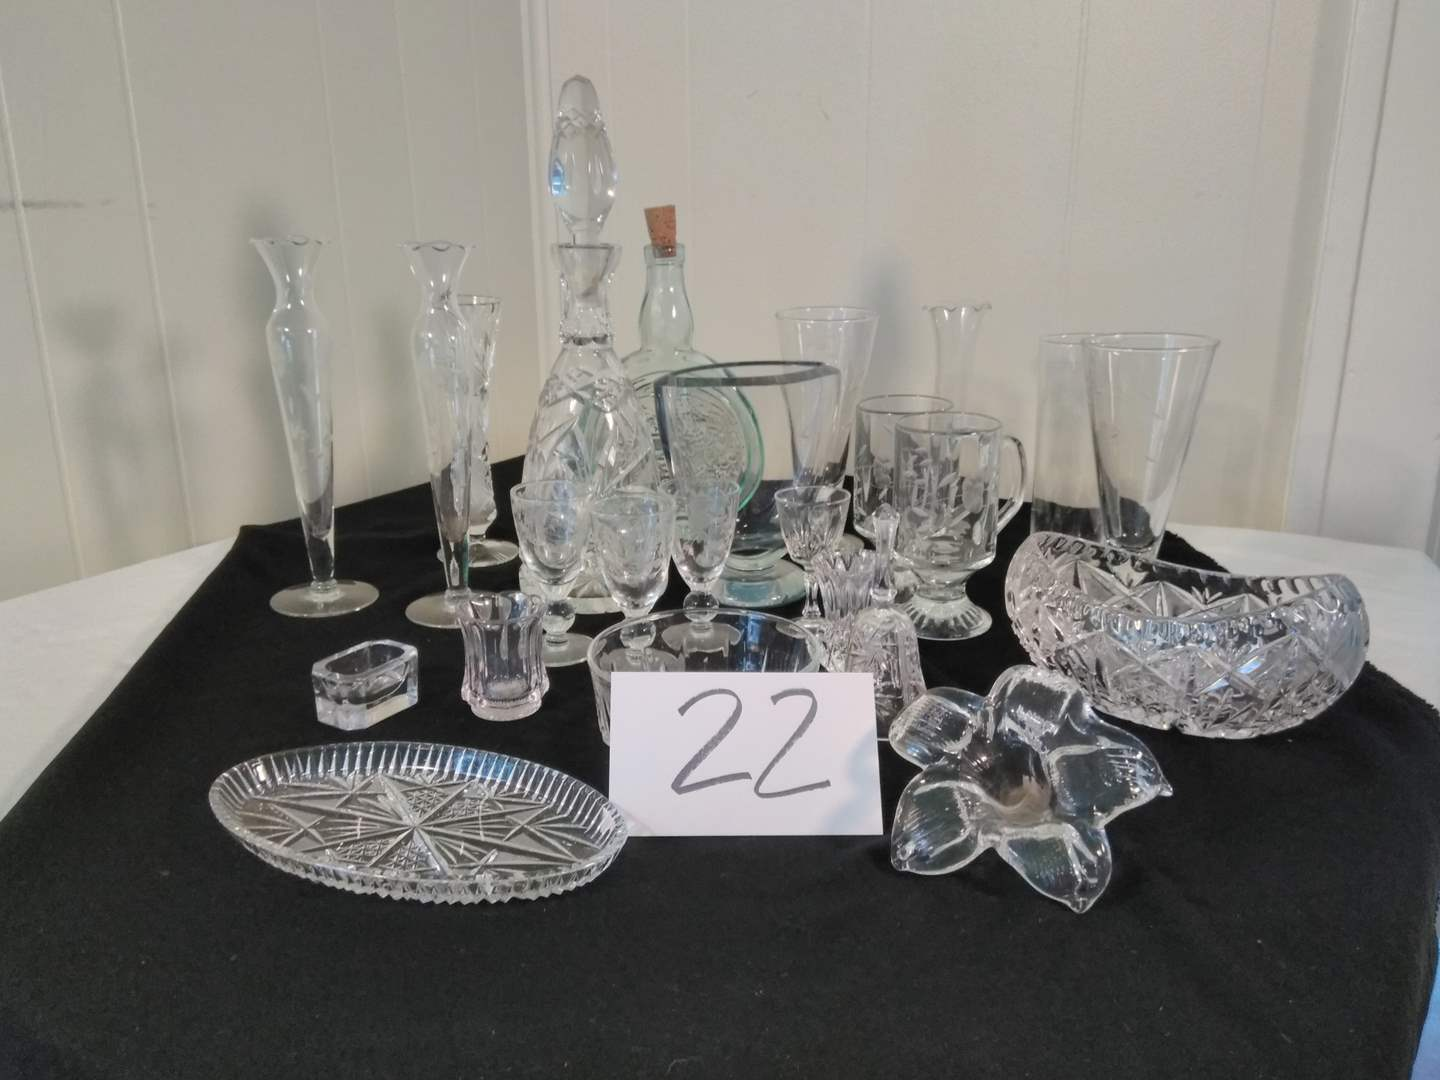 Lot # 22 - Crystal Candy Dishes, Vases, Decanters & More. (main image)